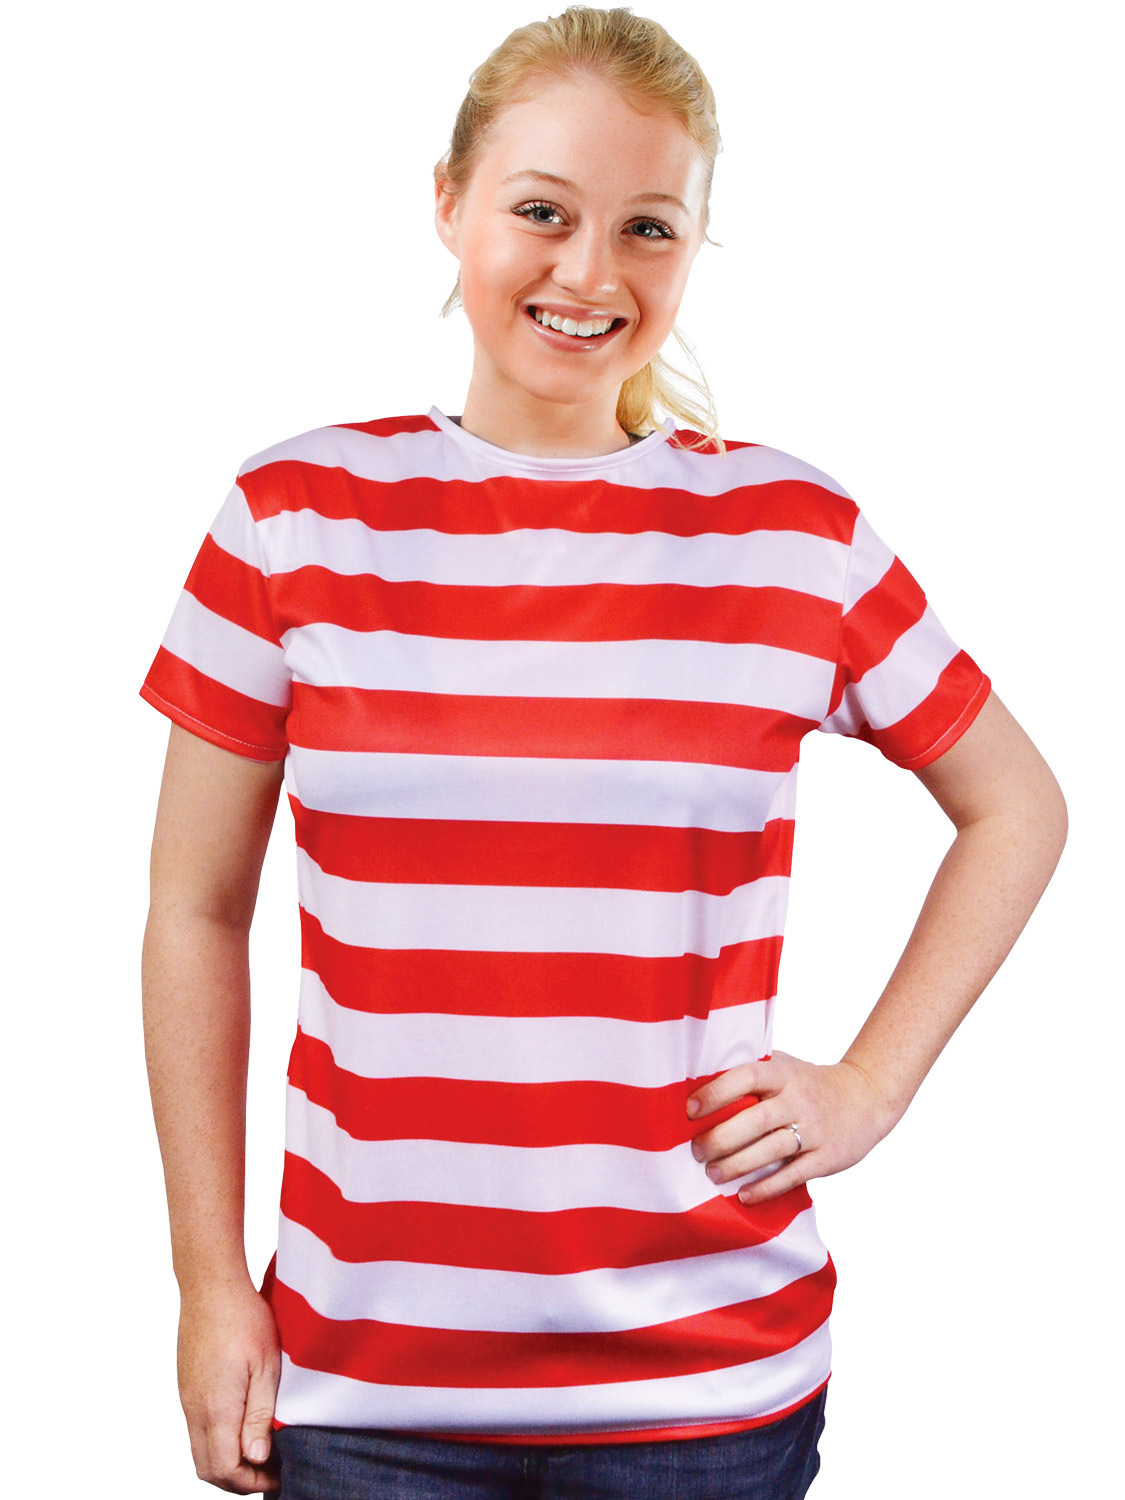 LADIES STRIPED RED WHITE T-SHIRT SET WHERES CHARACTER FANCY DRESS COSTUME